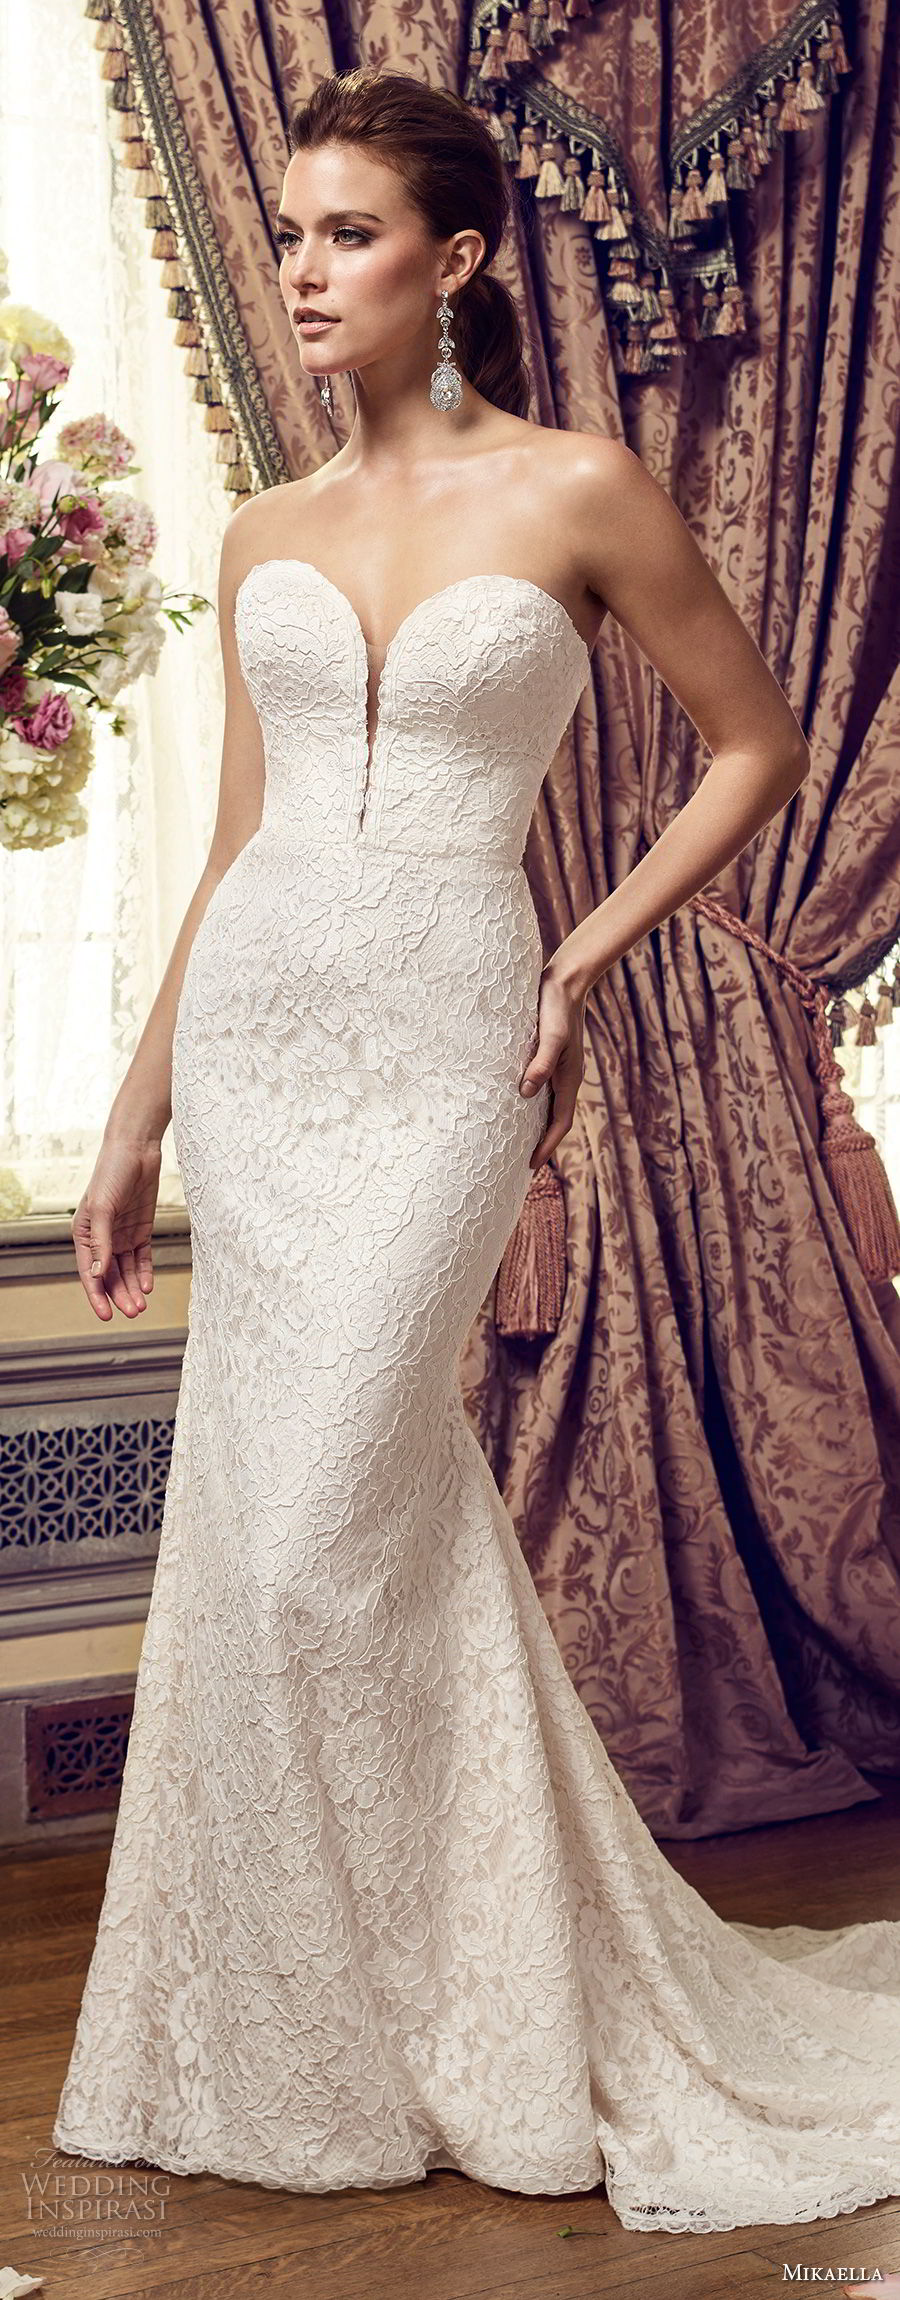 mikaella fall 2017 bridal strapless deep plunging sweetheart neckline heavily embellished bodice romantic elegant fit and flare medium train (2152) mv